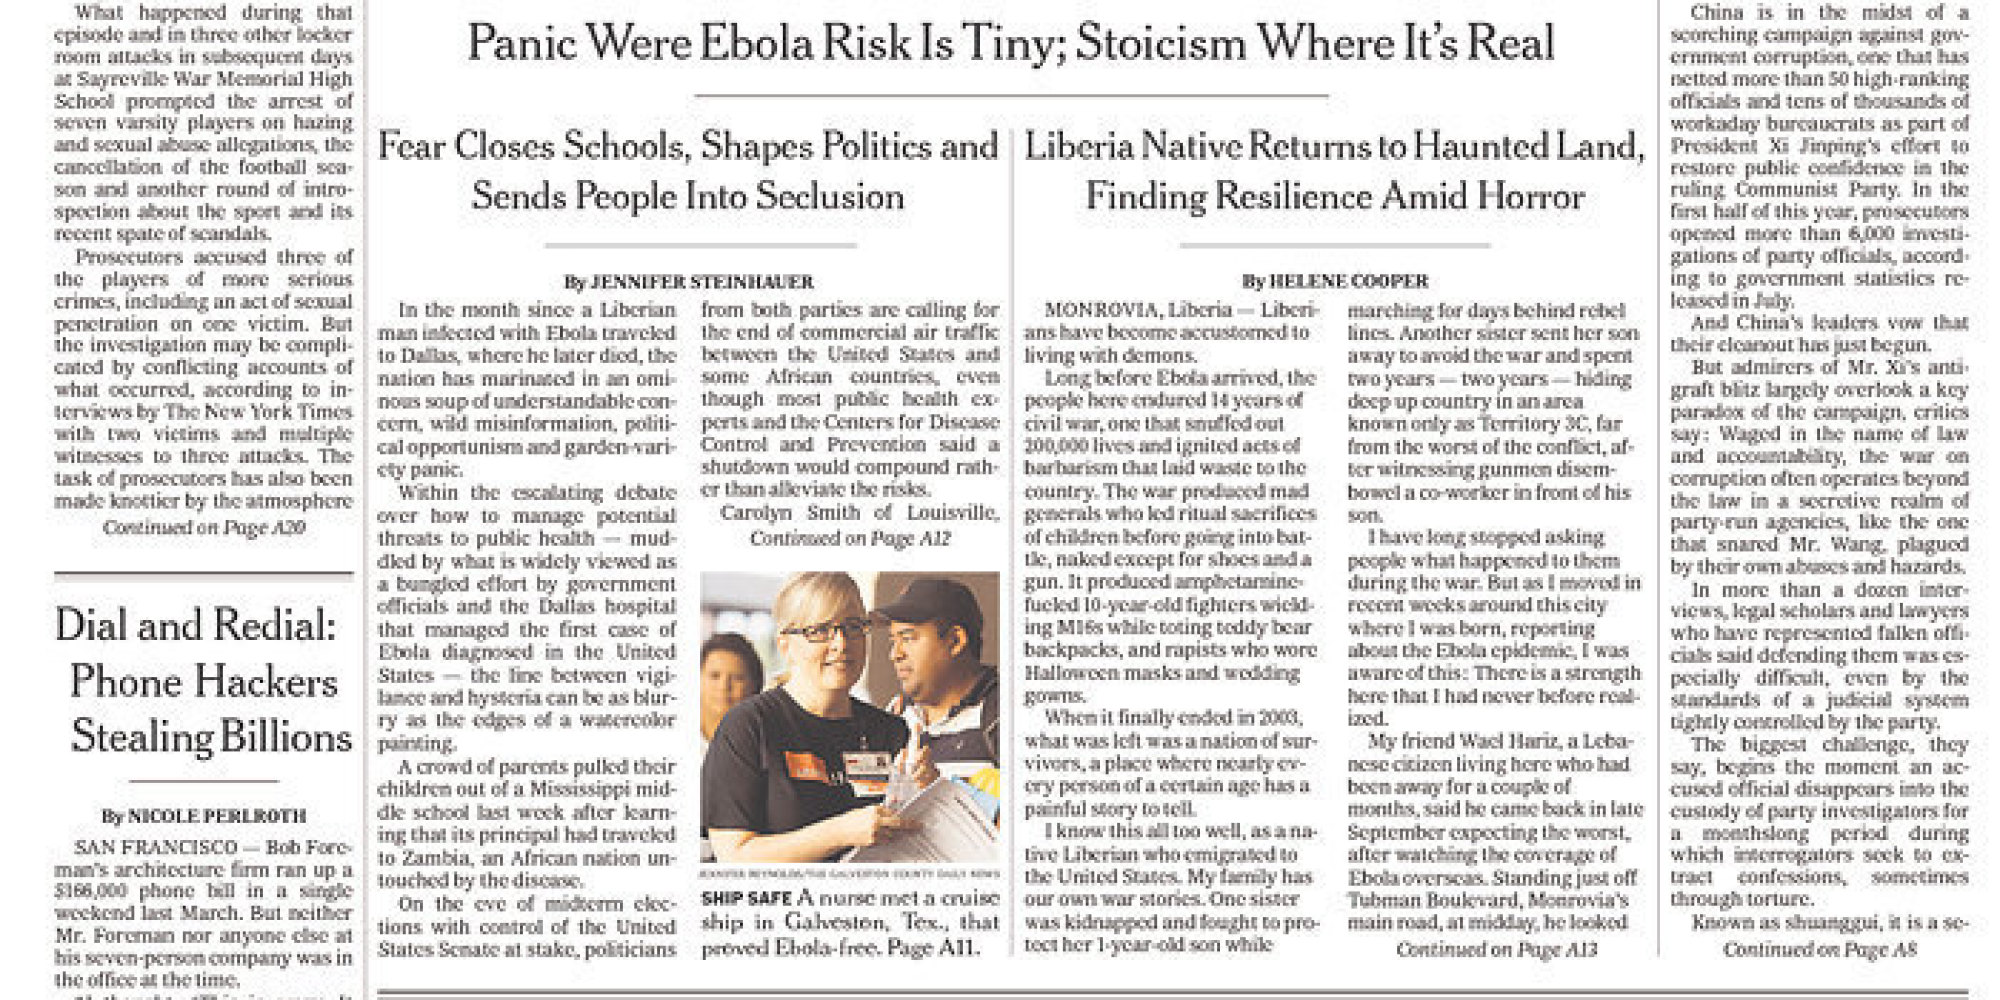 New York Times Makes Yet Another Front Page Blunder